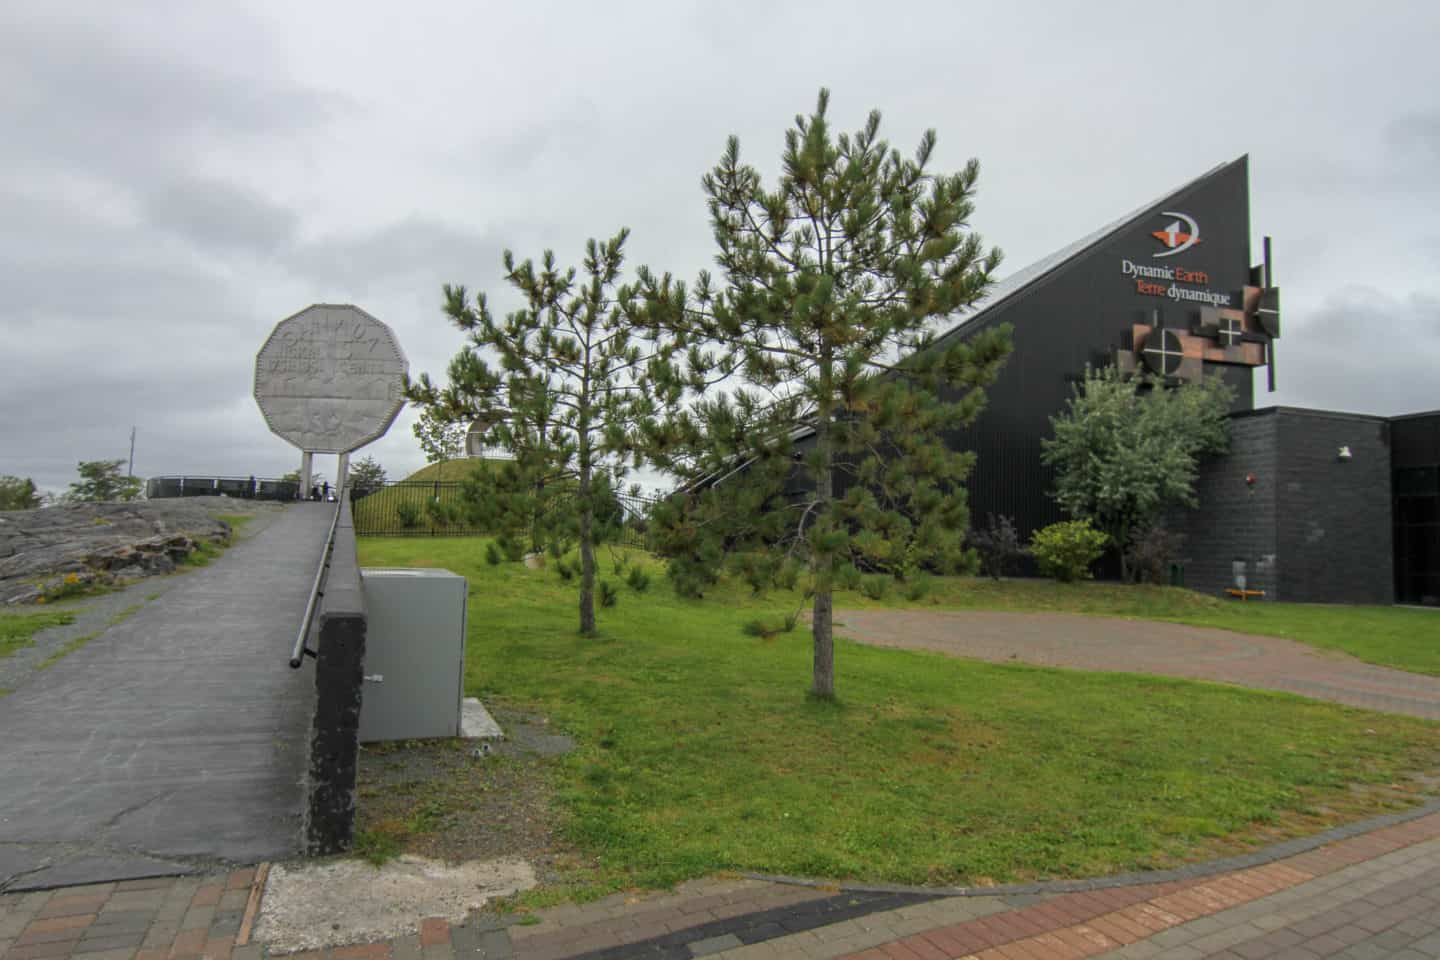 Visiting Dynamic Earth is one of the things to do in Sudbury